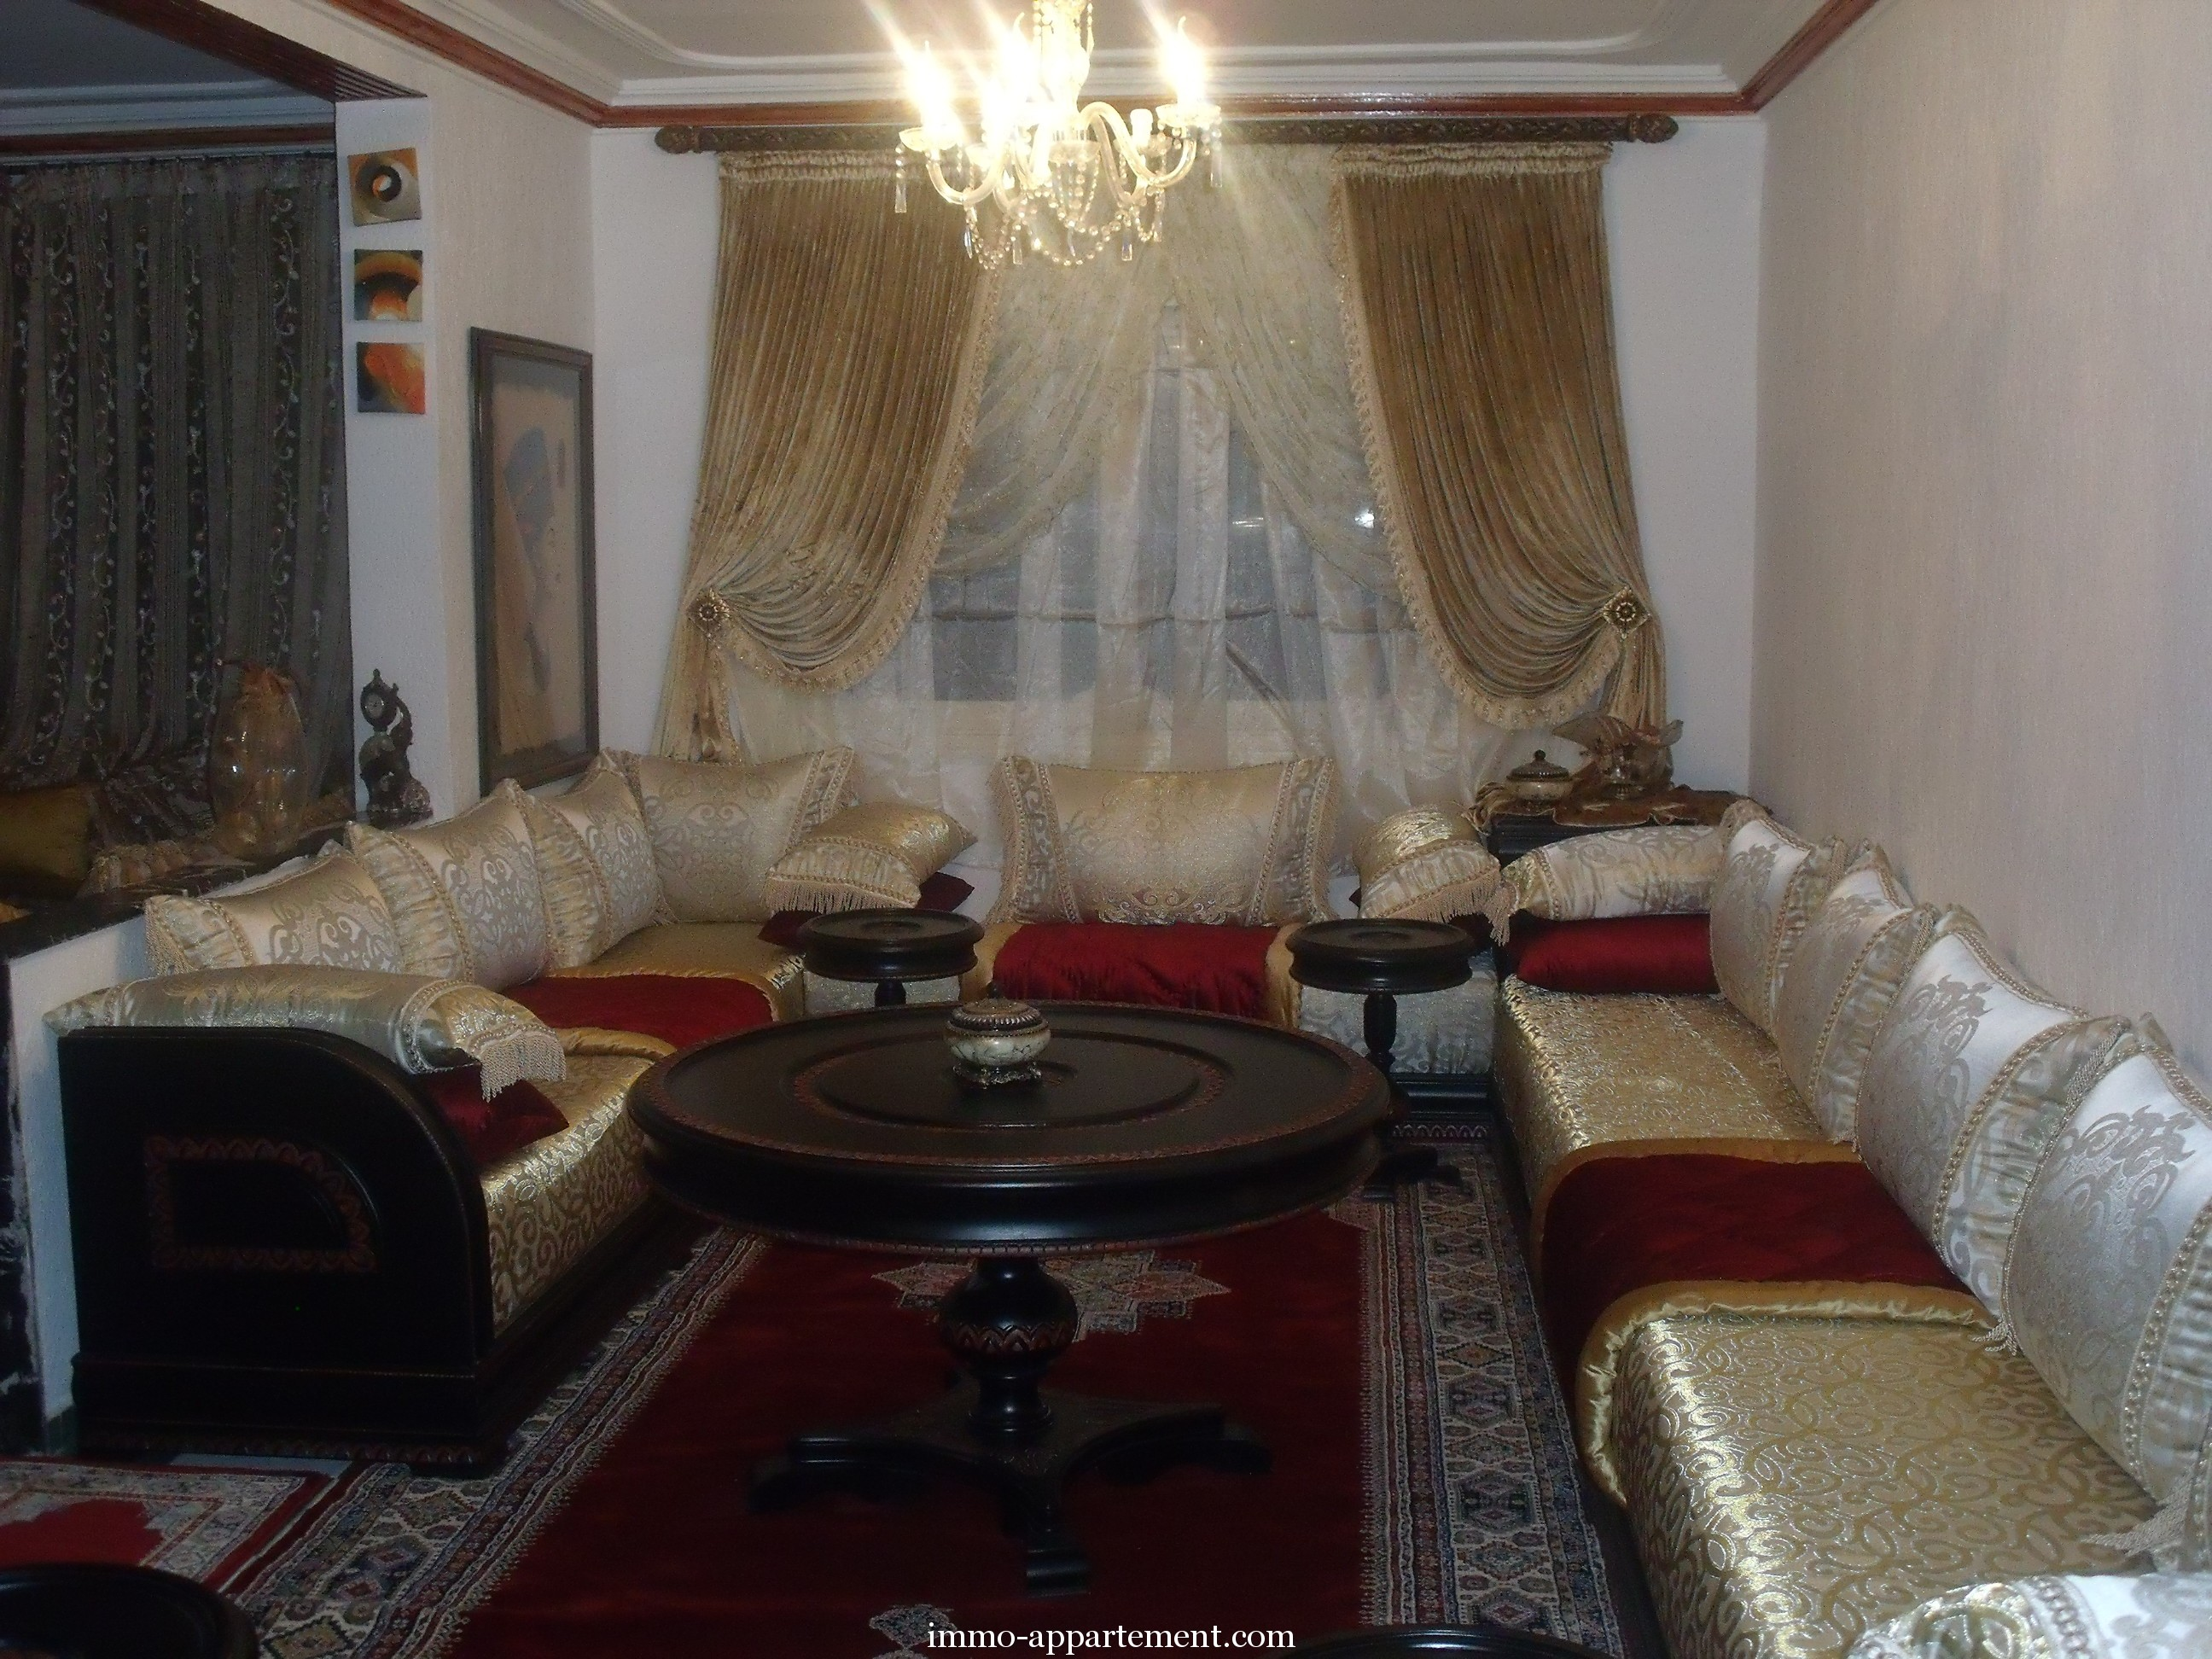 Articles immobiliers de kenitra et sa r gionl immo appartement for Photos de salons marocains